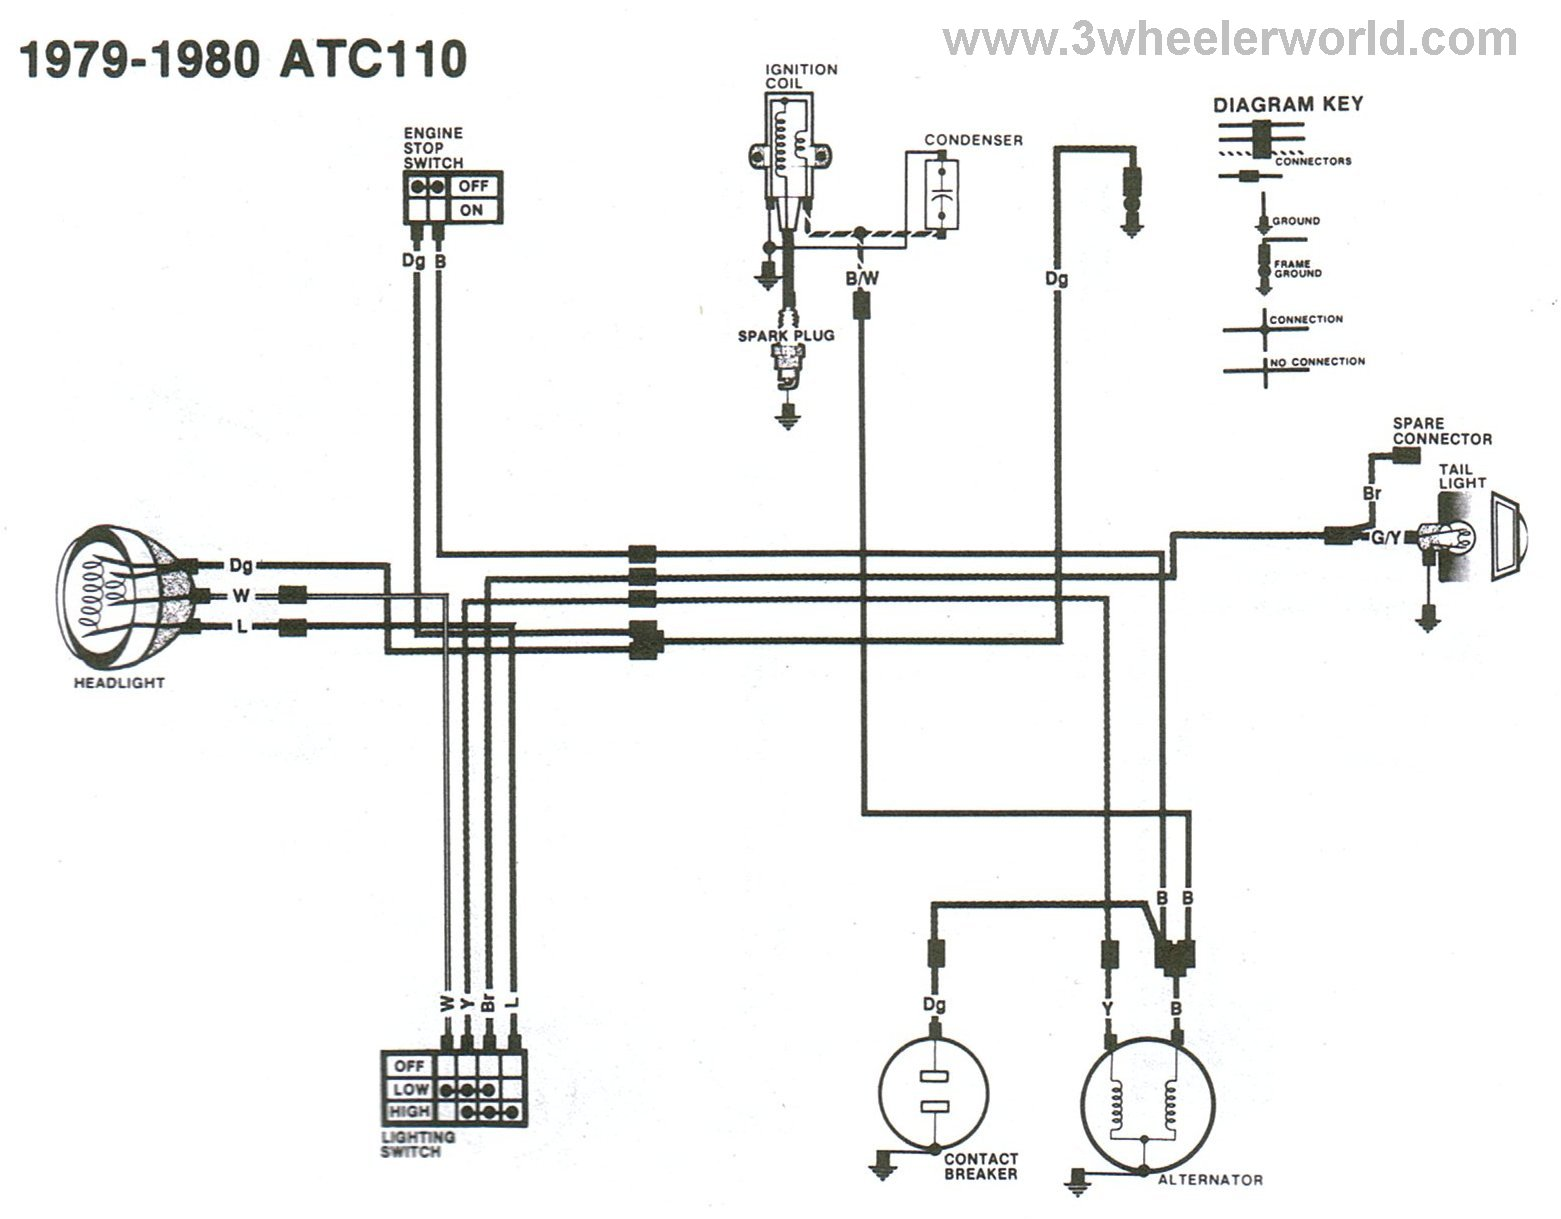 ATC110x79Thru80 3 wheeler world tech help honda wiring diagrams 400ex wiring diagram at readyjetset.co